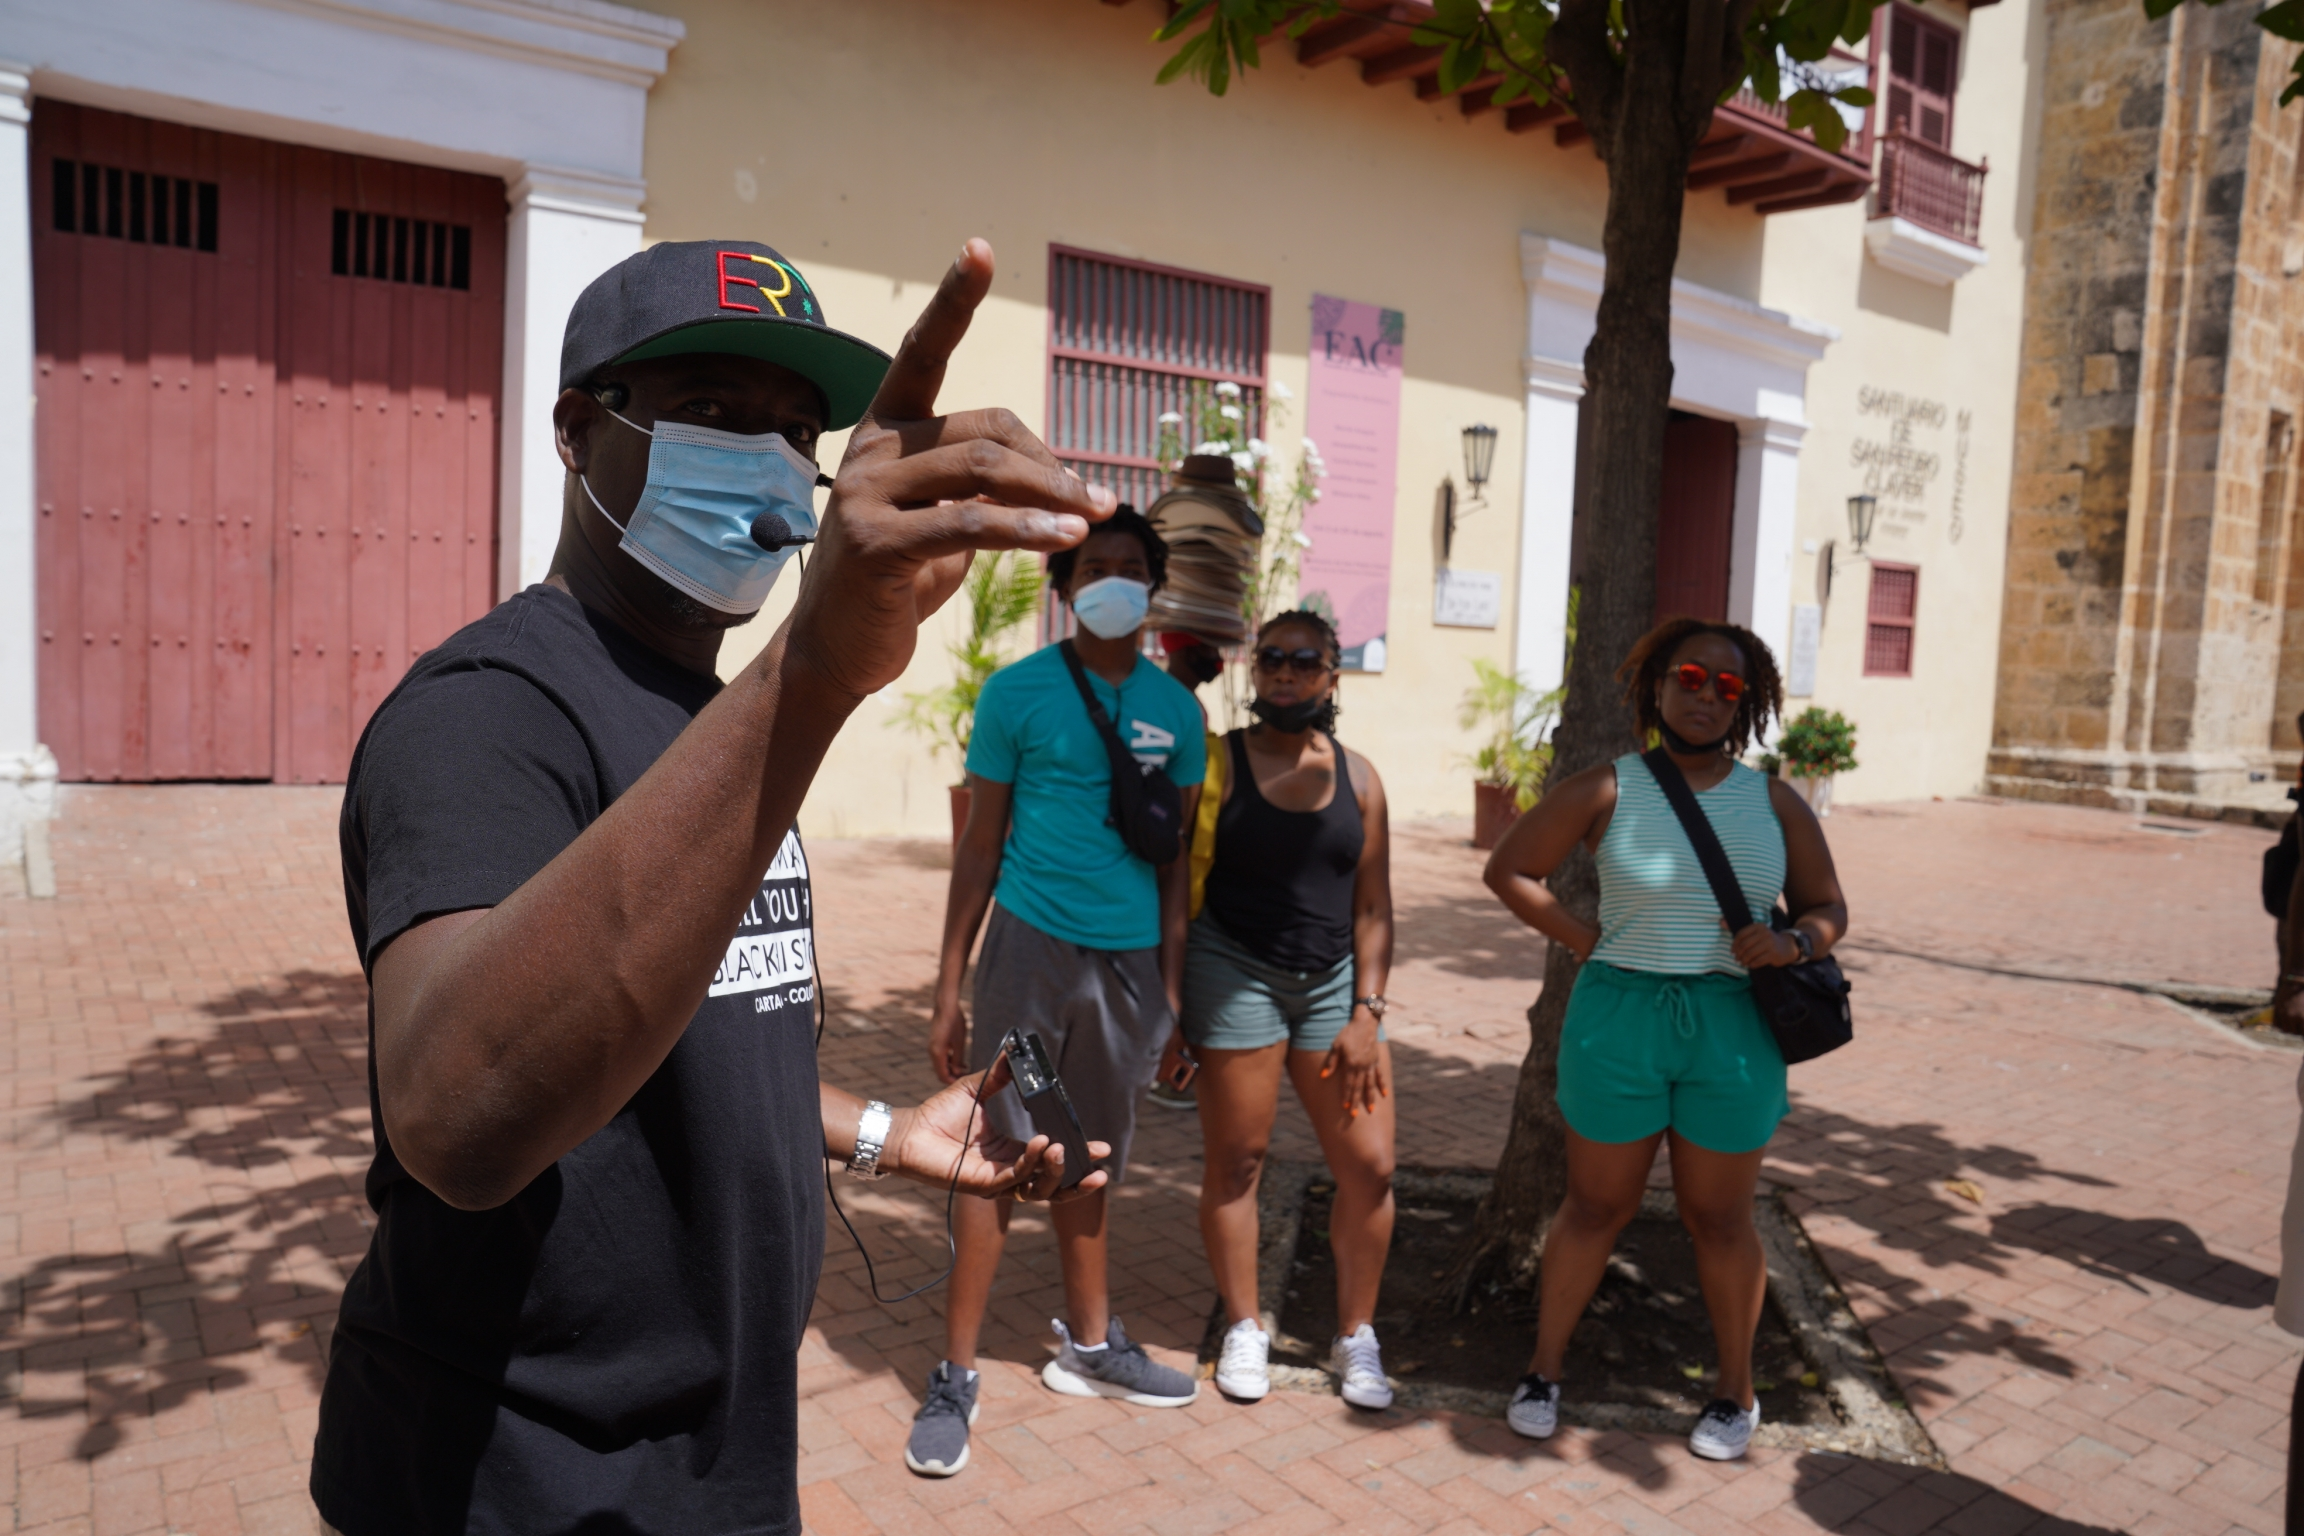 During his tours Alex Rocha speaks about chapters of the city's history that are not mentioned on the official signs placed by the city government, including the city's relation to the slave trade